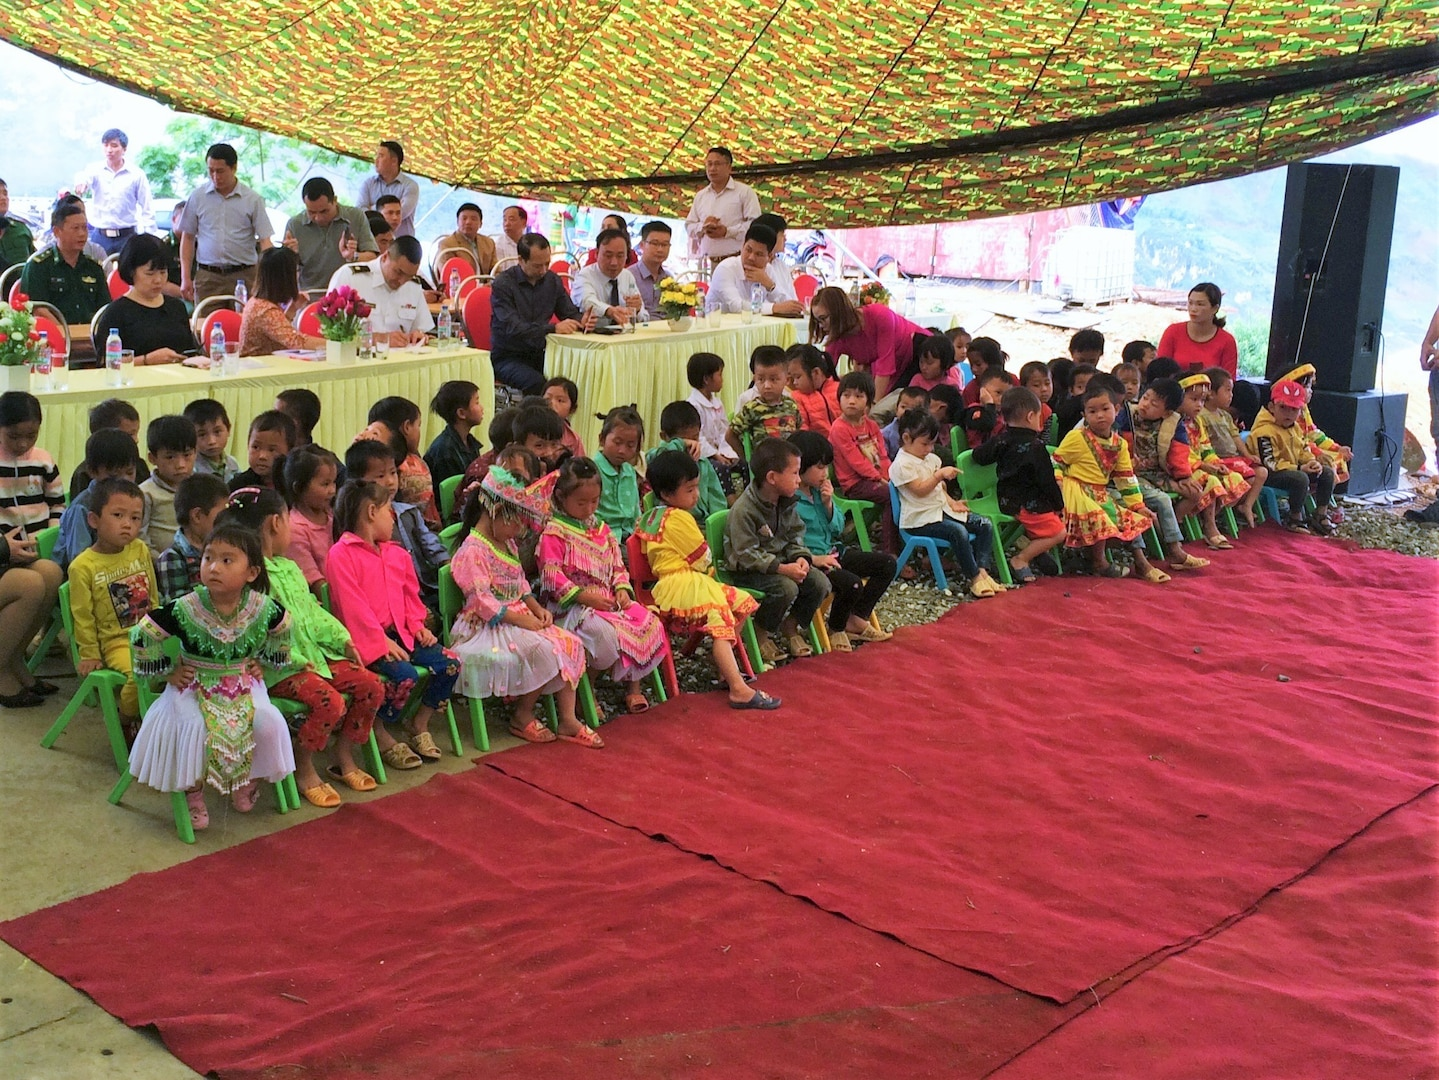 U.S. Army Corps of Engineers Building Bright Futures for Children in Vietnam